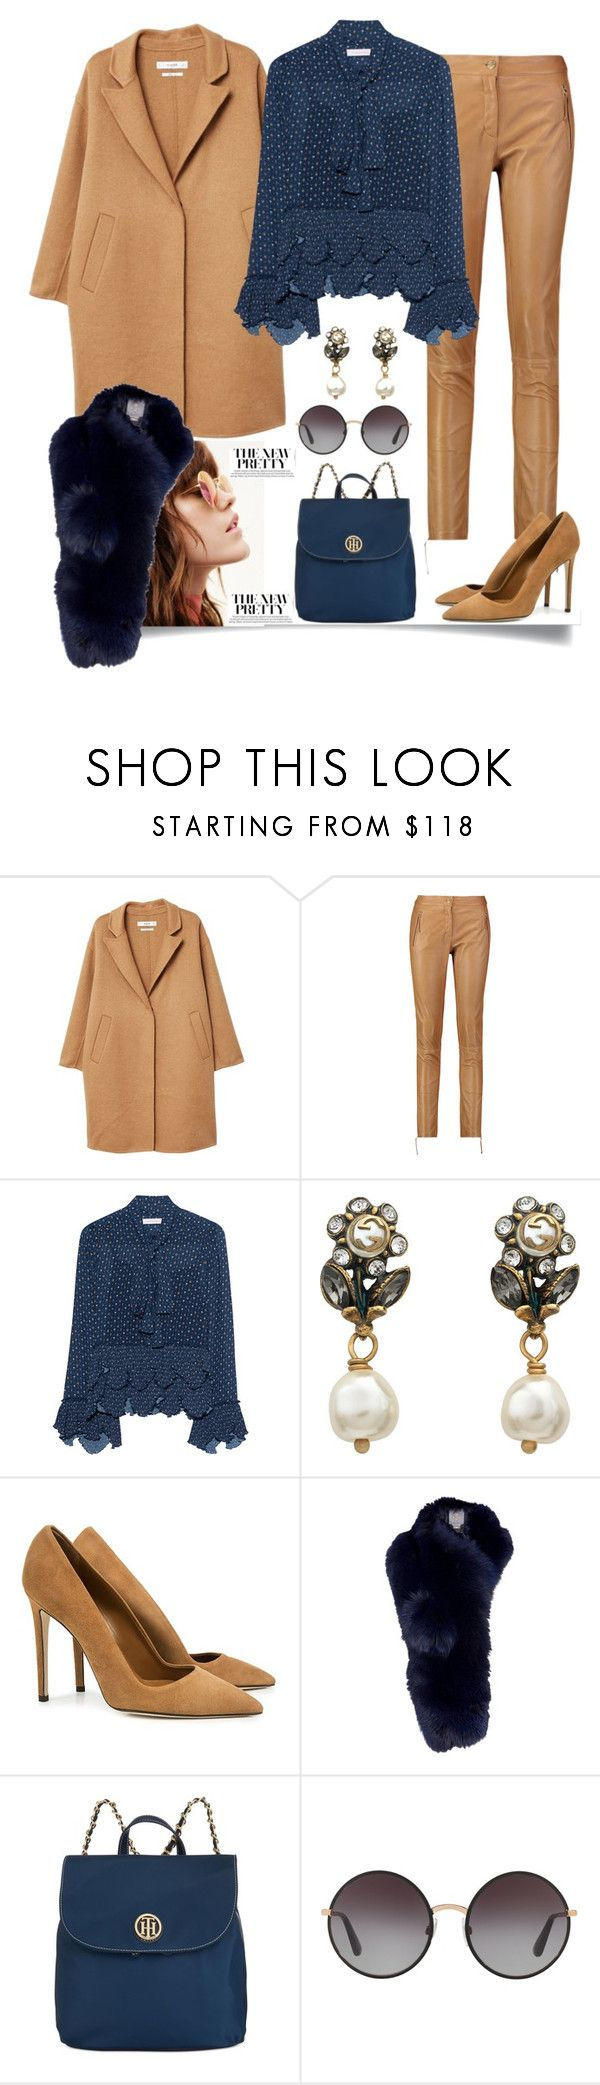 """Relax, turn around and take my hand~"" by dianefantasy ❤ liked on Polyvore featuring MANGO, Roberto Cavalli, See by Chloé, Gucci, Dee Keller, Lilly e Violetta, Tommy Hilfiger, Dolce&Gabbana, romantic and polyvorecommunity"